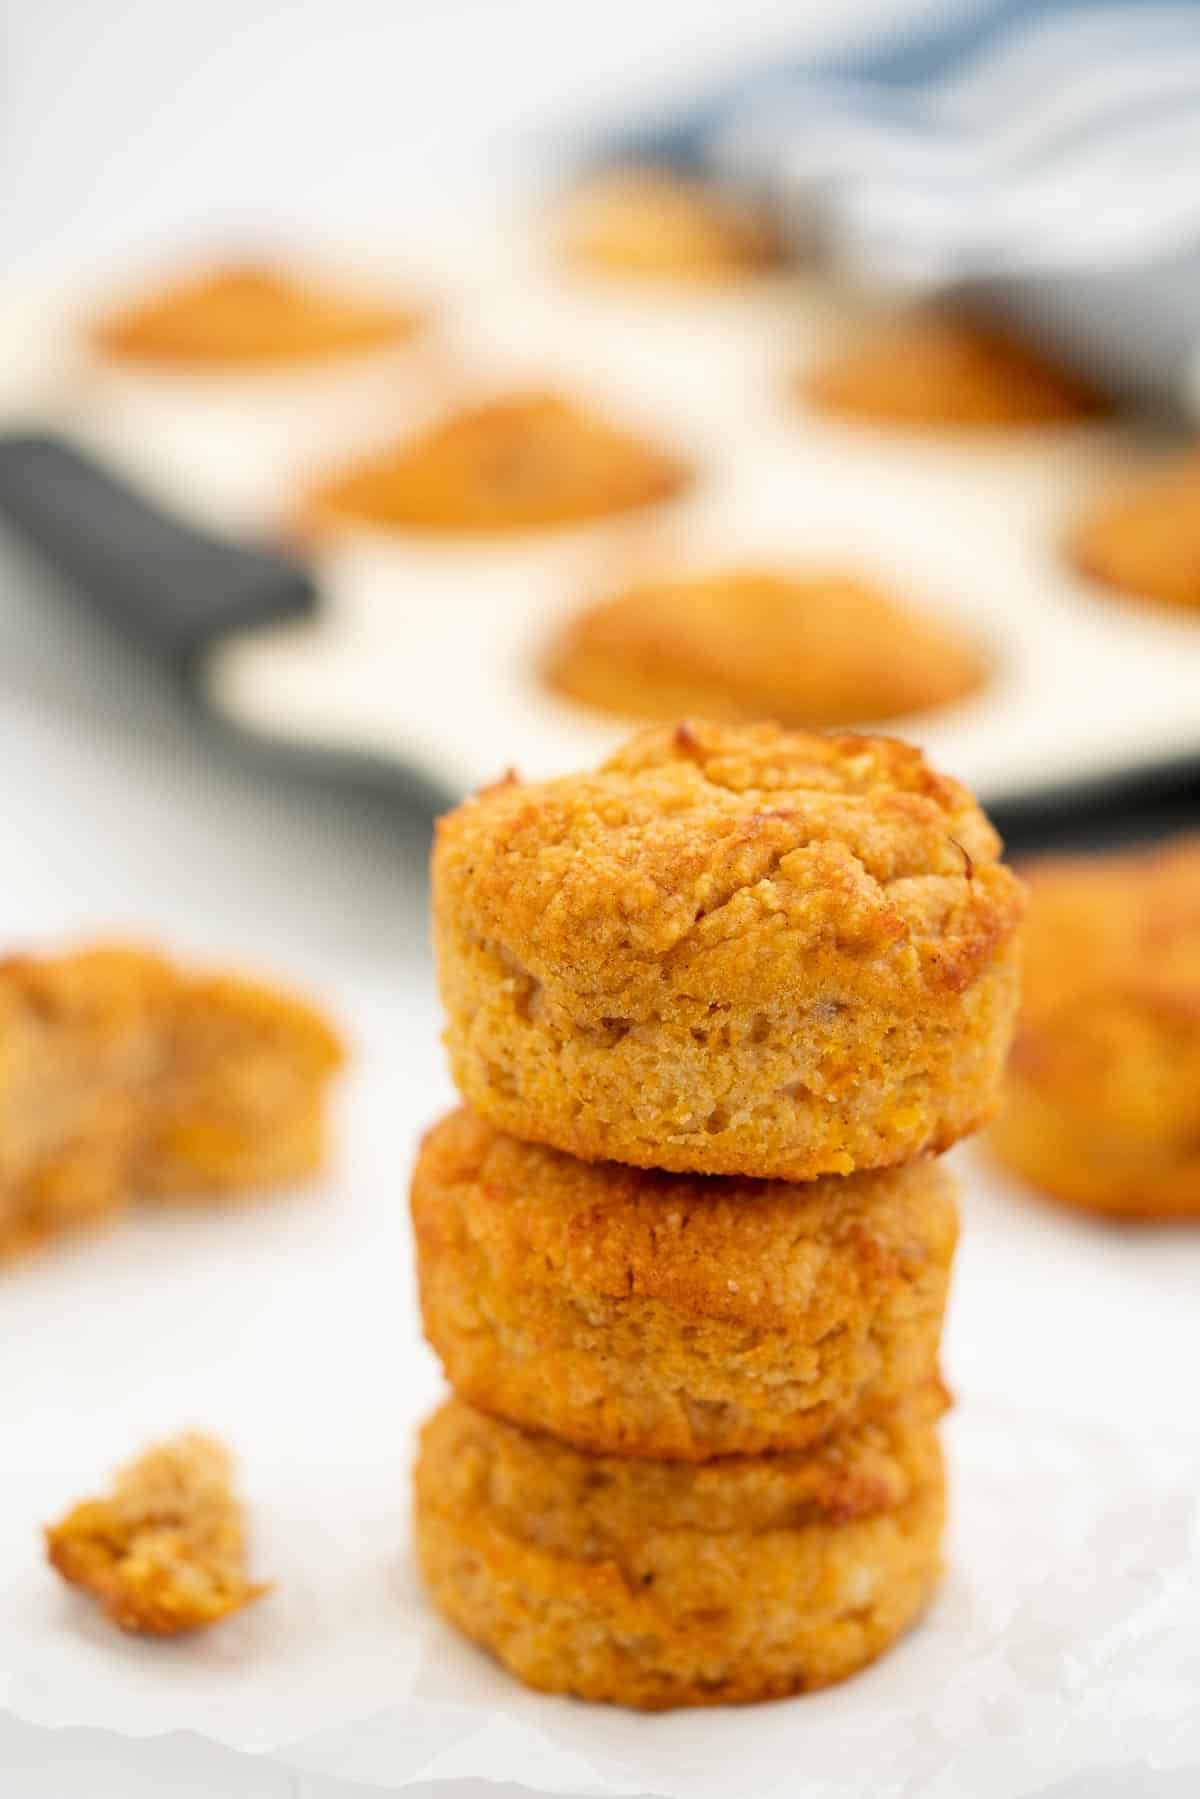 A tower of three sweet potato muffins.